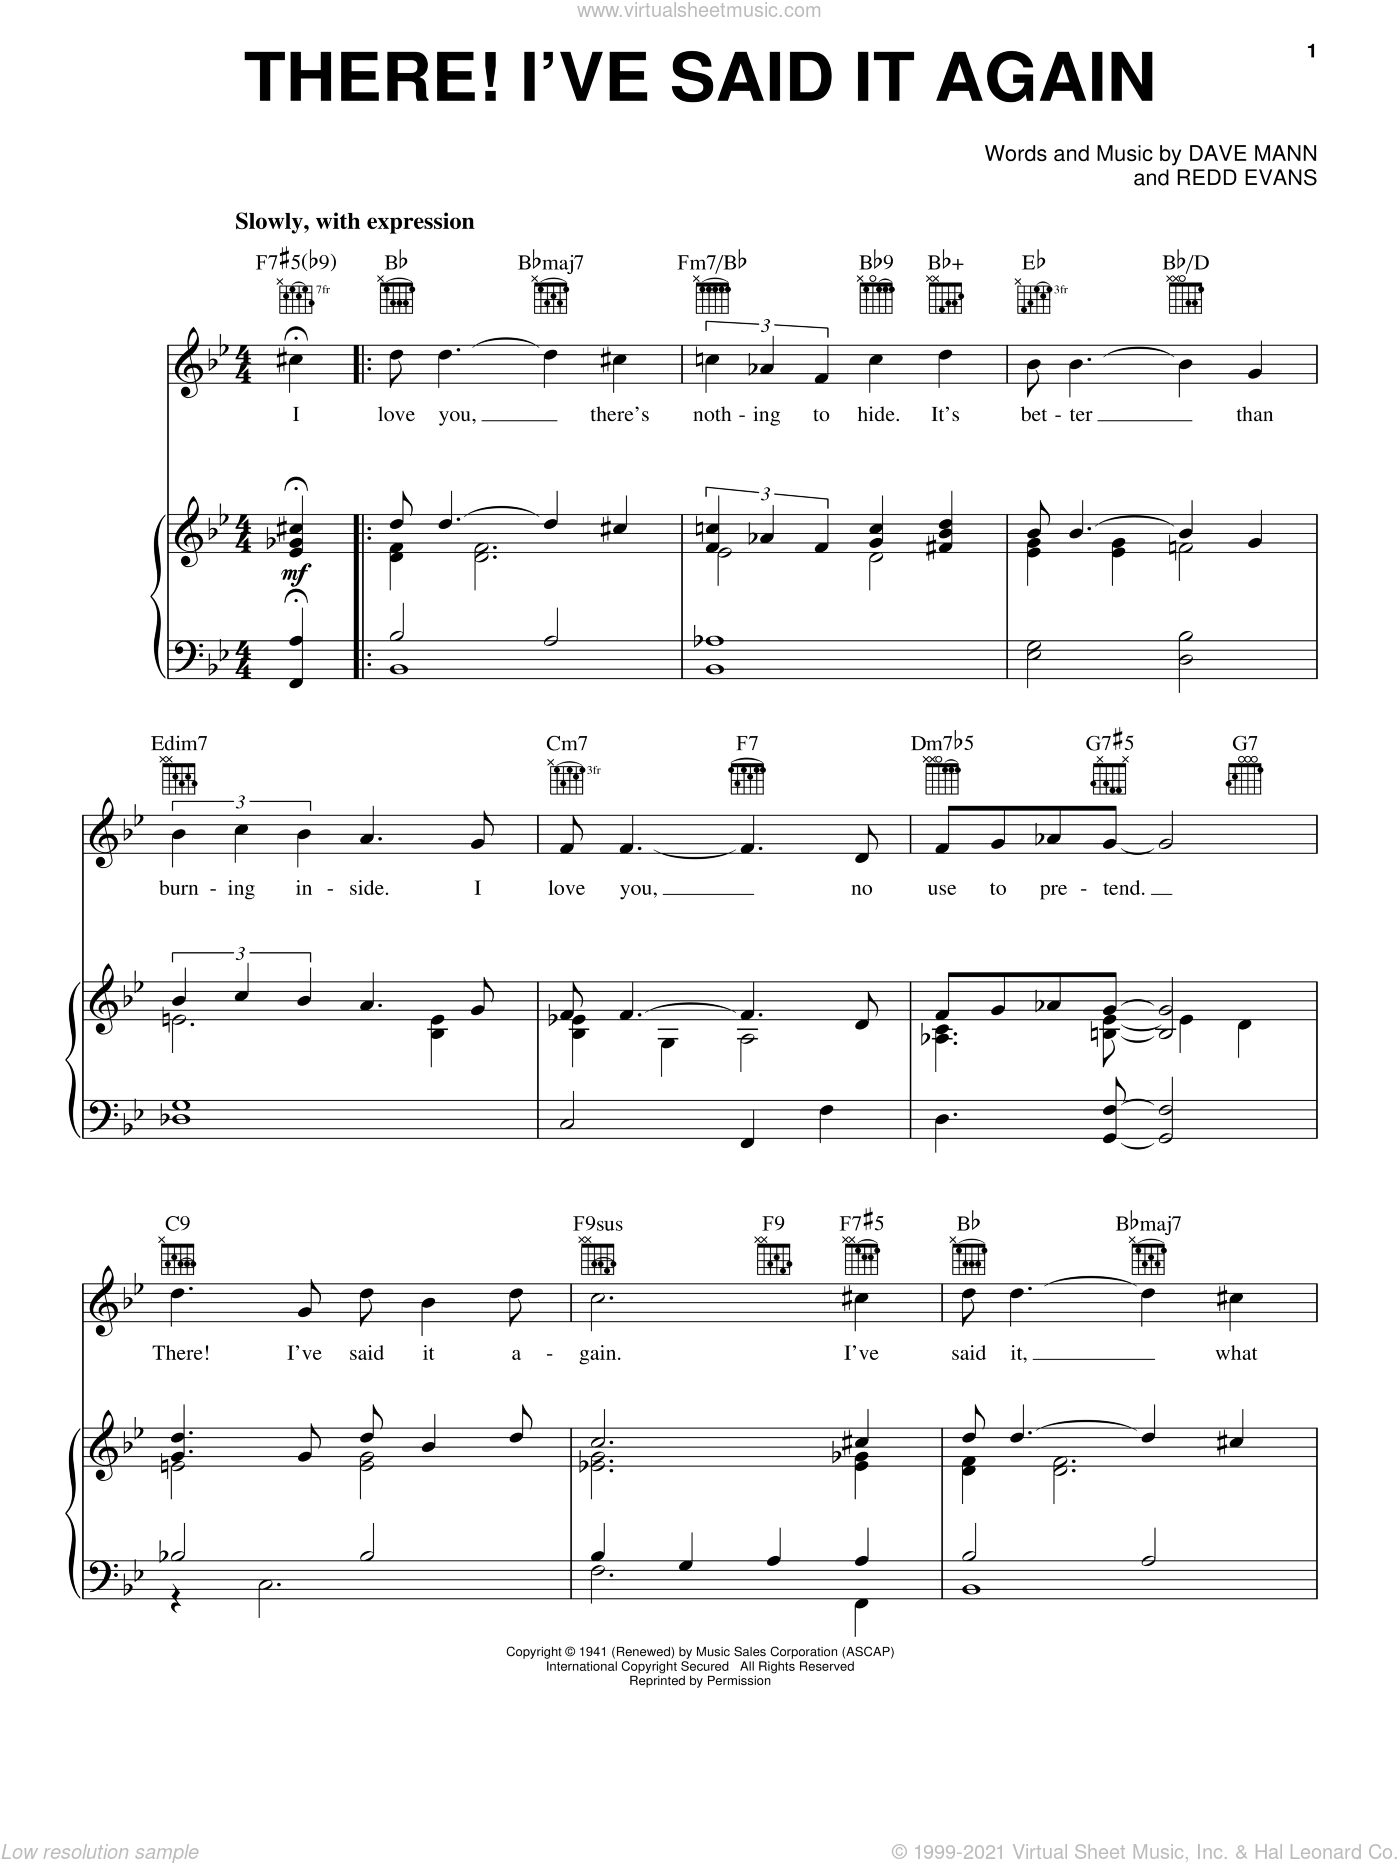 There! I've Said It Again sheet music for voice, piano or guitar by Vaughn Monroe, Bobby Vinton, Dave Mann and Redd Evans, intermediate skill level